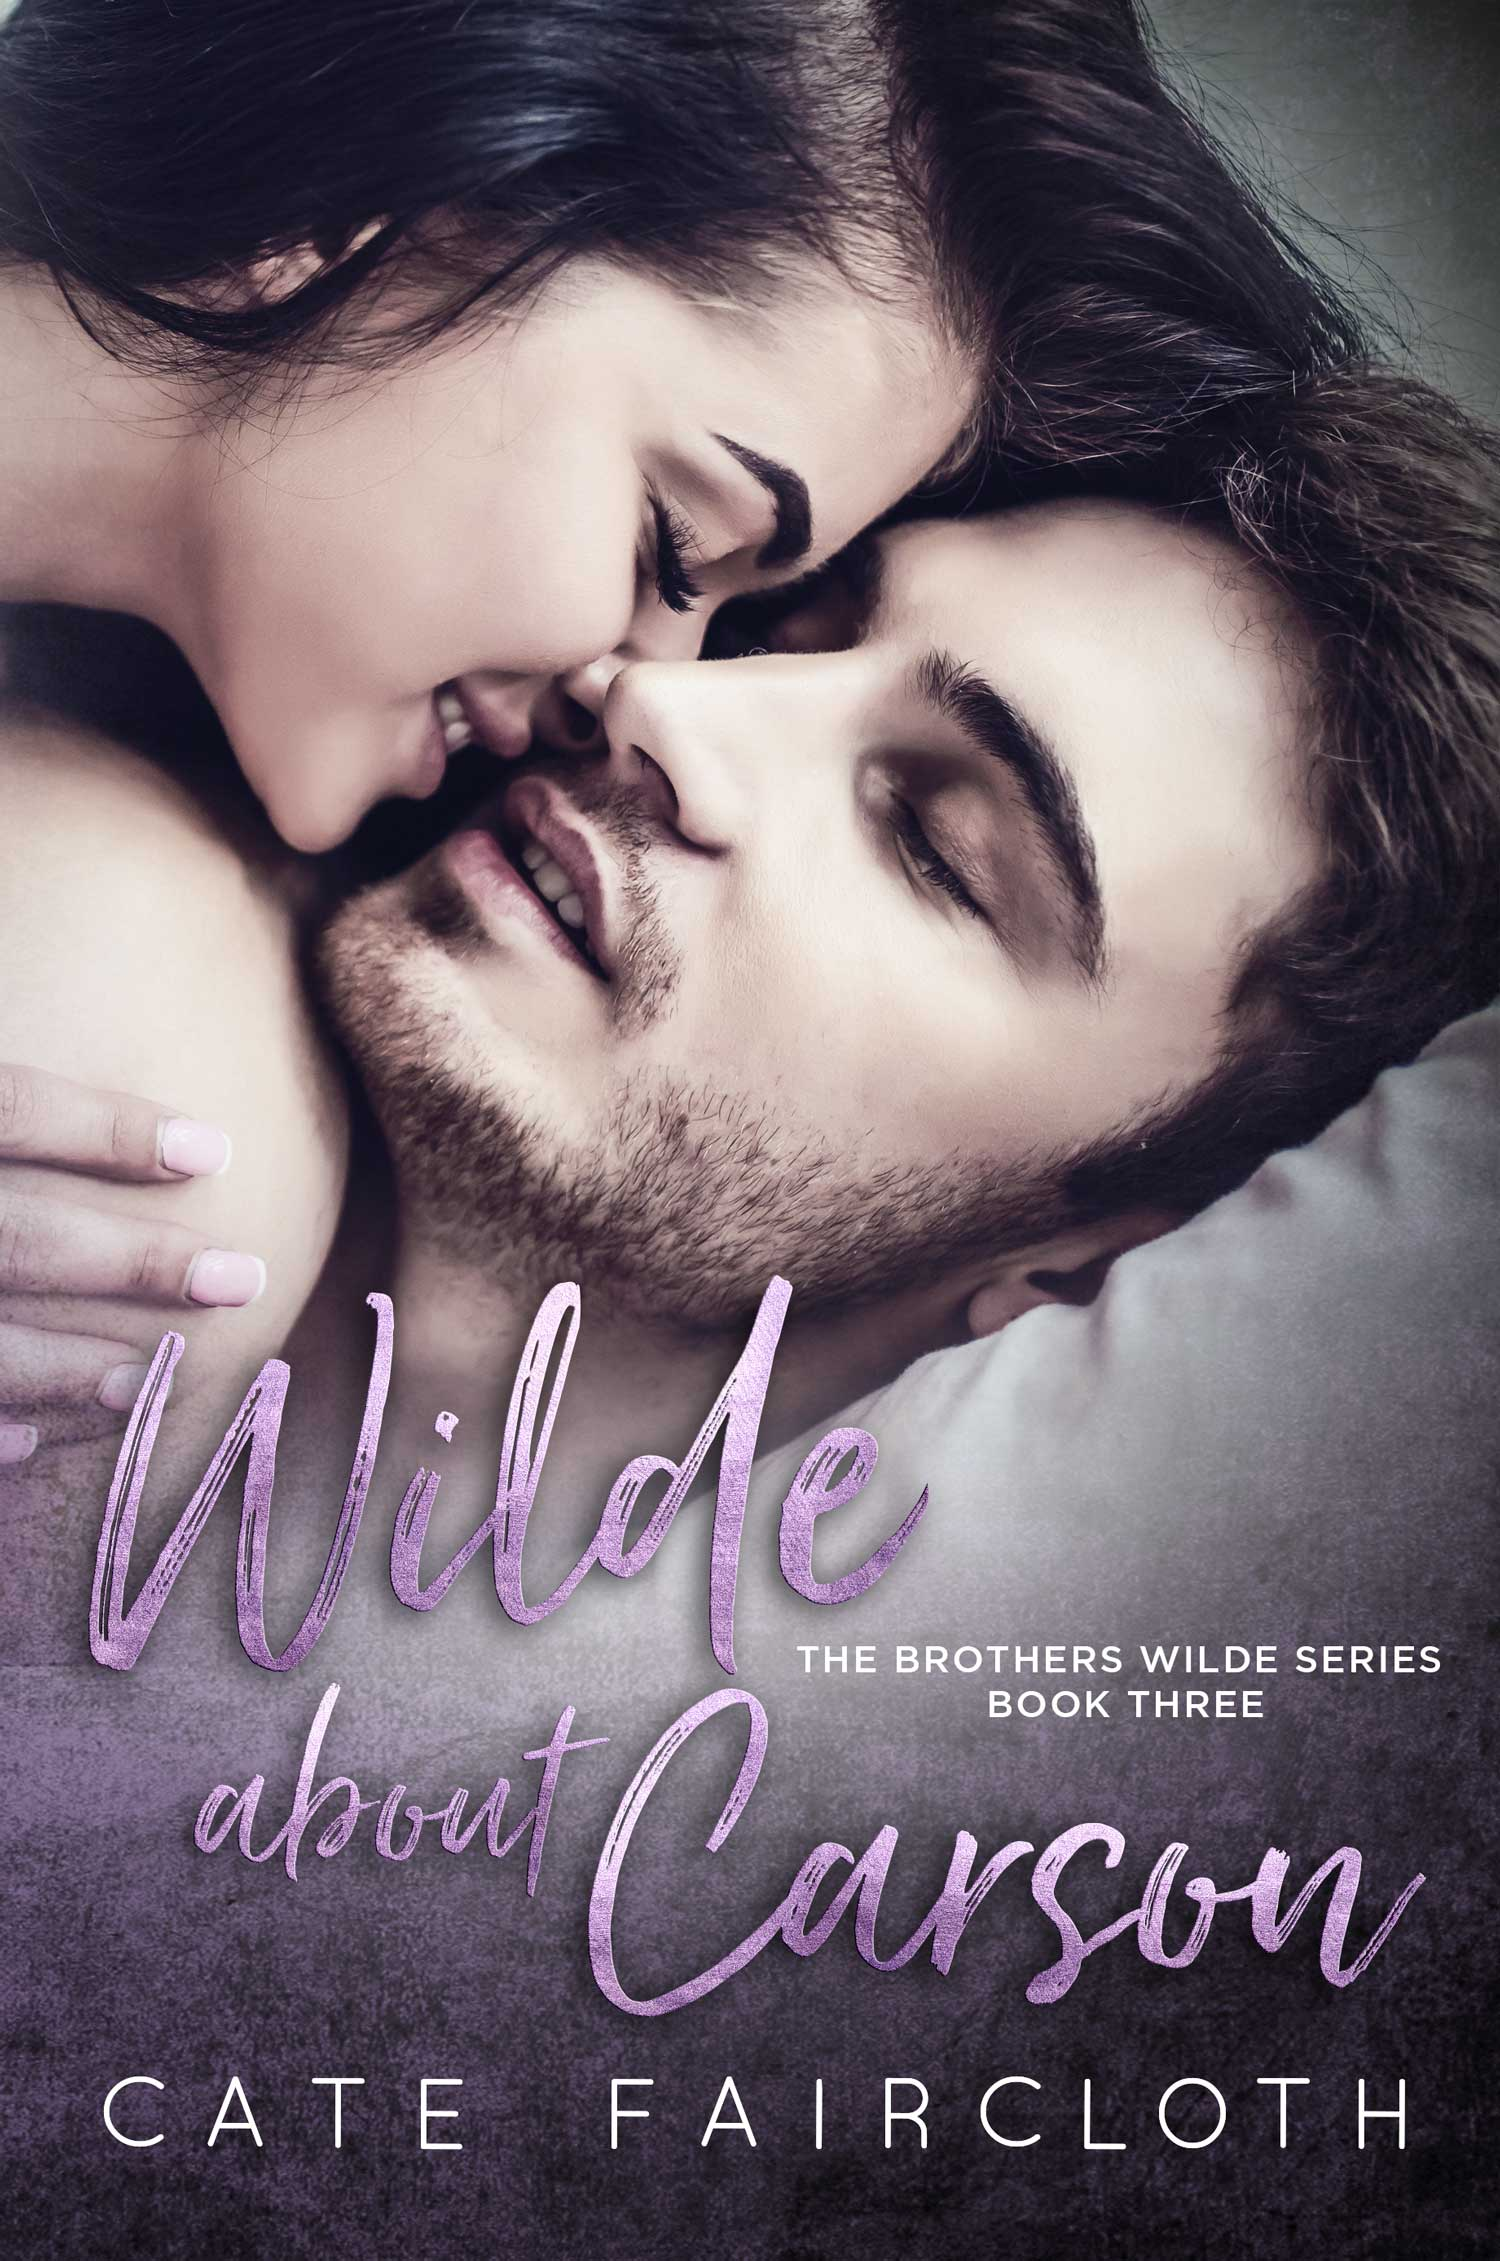 Wilde About Carson – The Brothers Wilde Series, Book Three